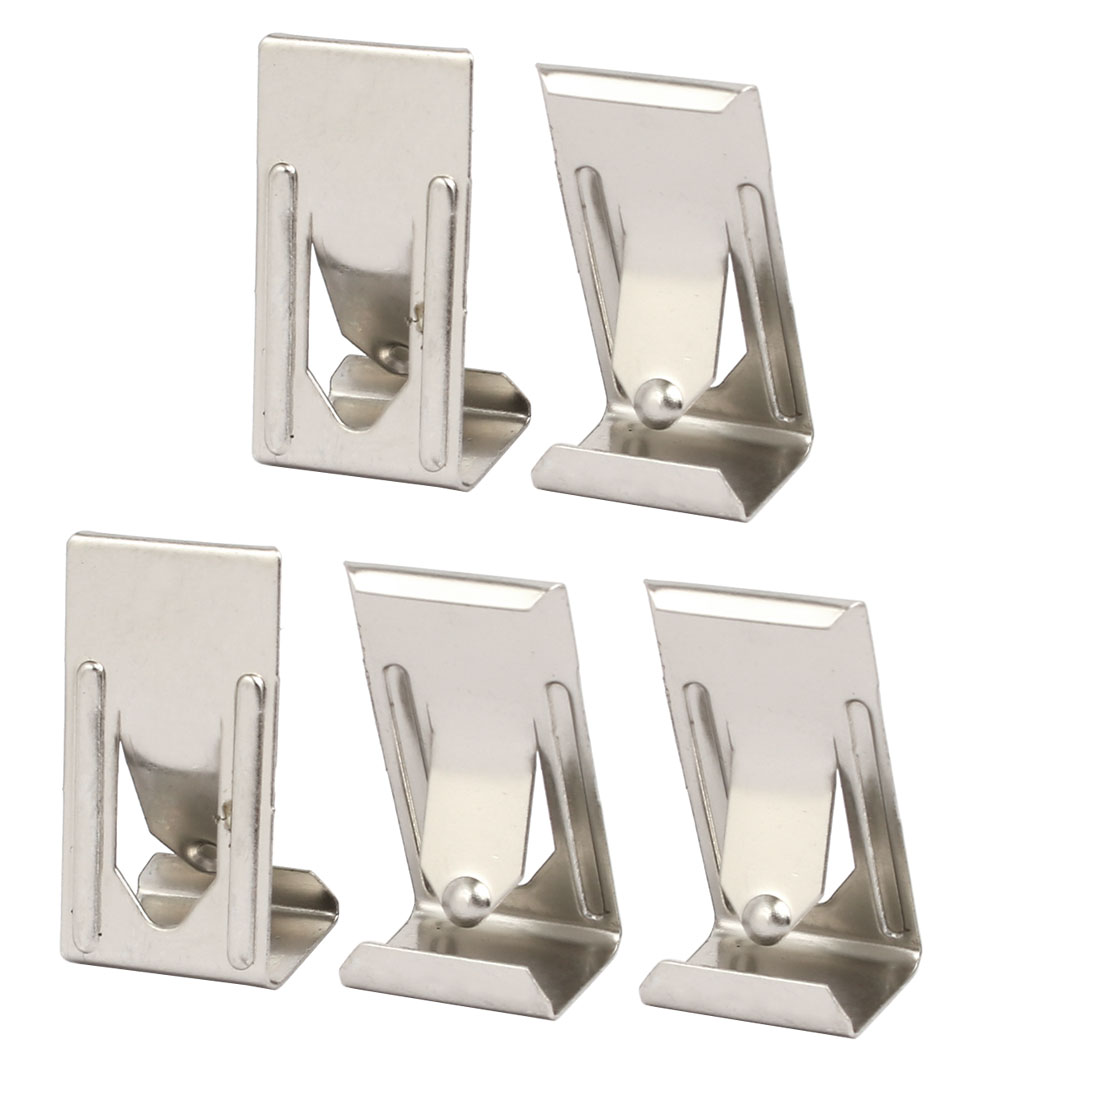 26mmx14mm Picture Photo Frame Metal Spring Turn Clip Hanger Siver Tone 5pcs